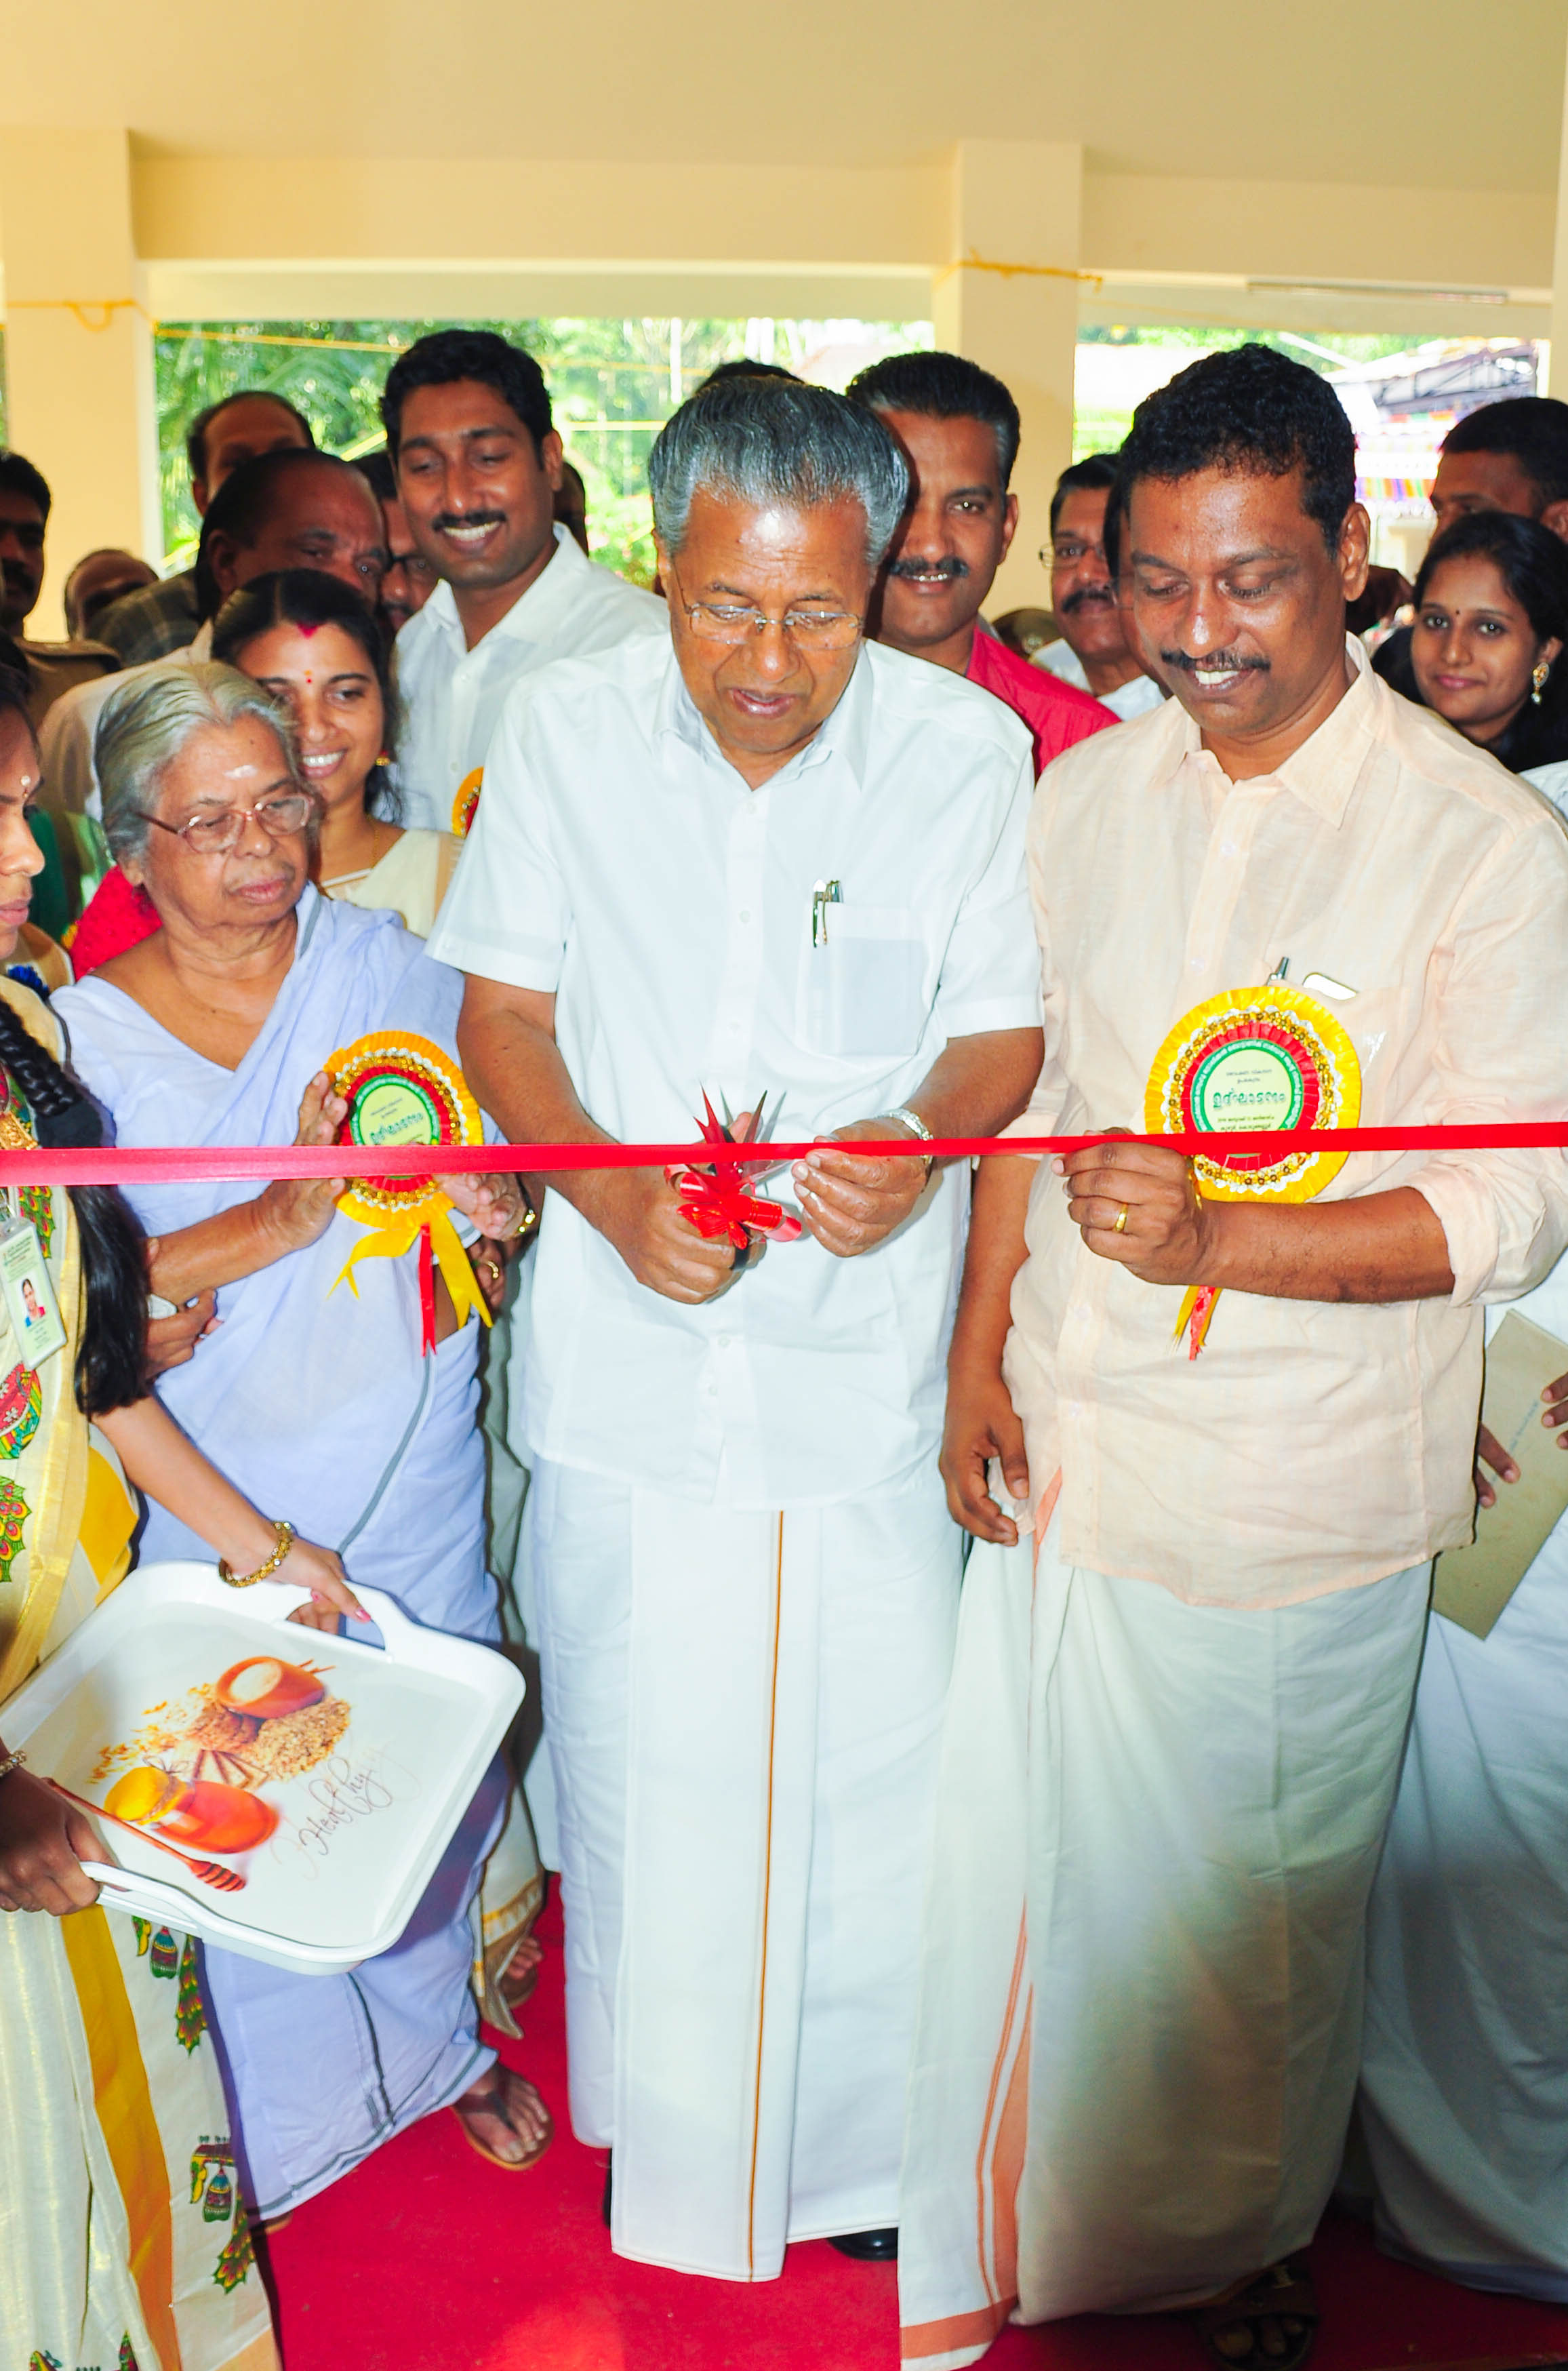 The Chief Minister of Kerala, Pinarayi Vijayan had formally inaugurated R&D Sub Centre of KSCSTE-JNTBGRI at Kuzhur in Thrissur on January 12, 2019 (just a while ago).1